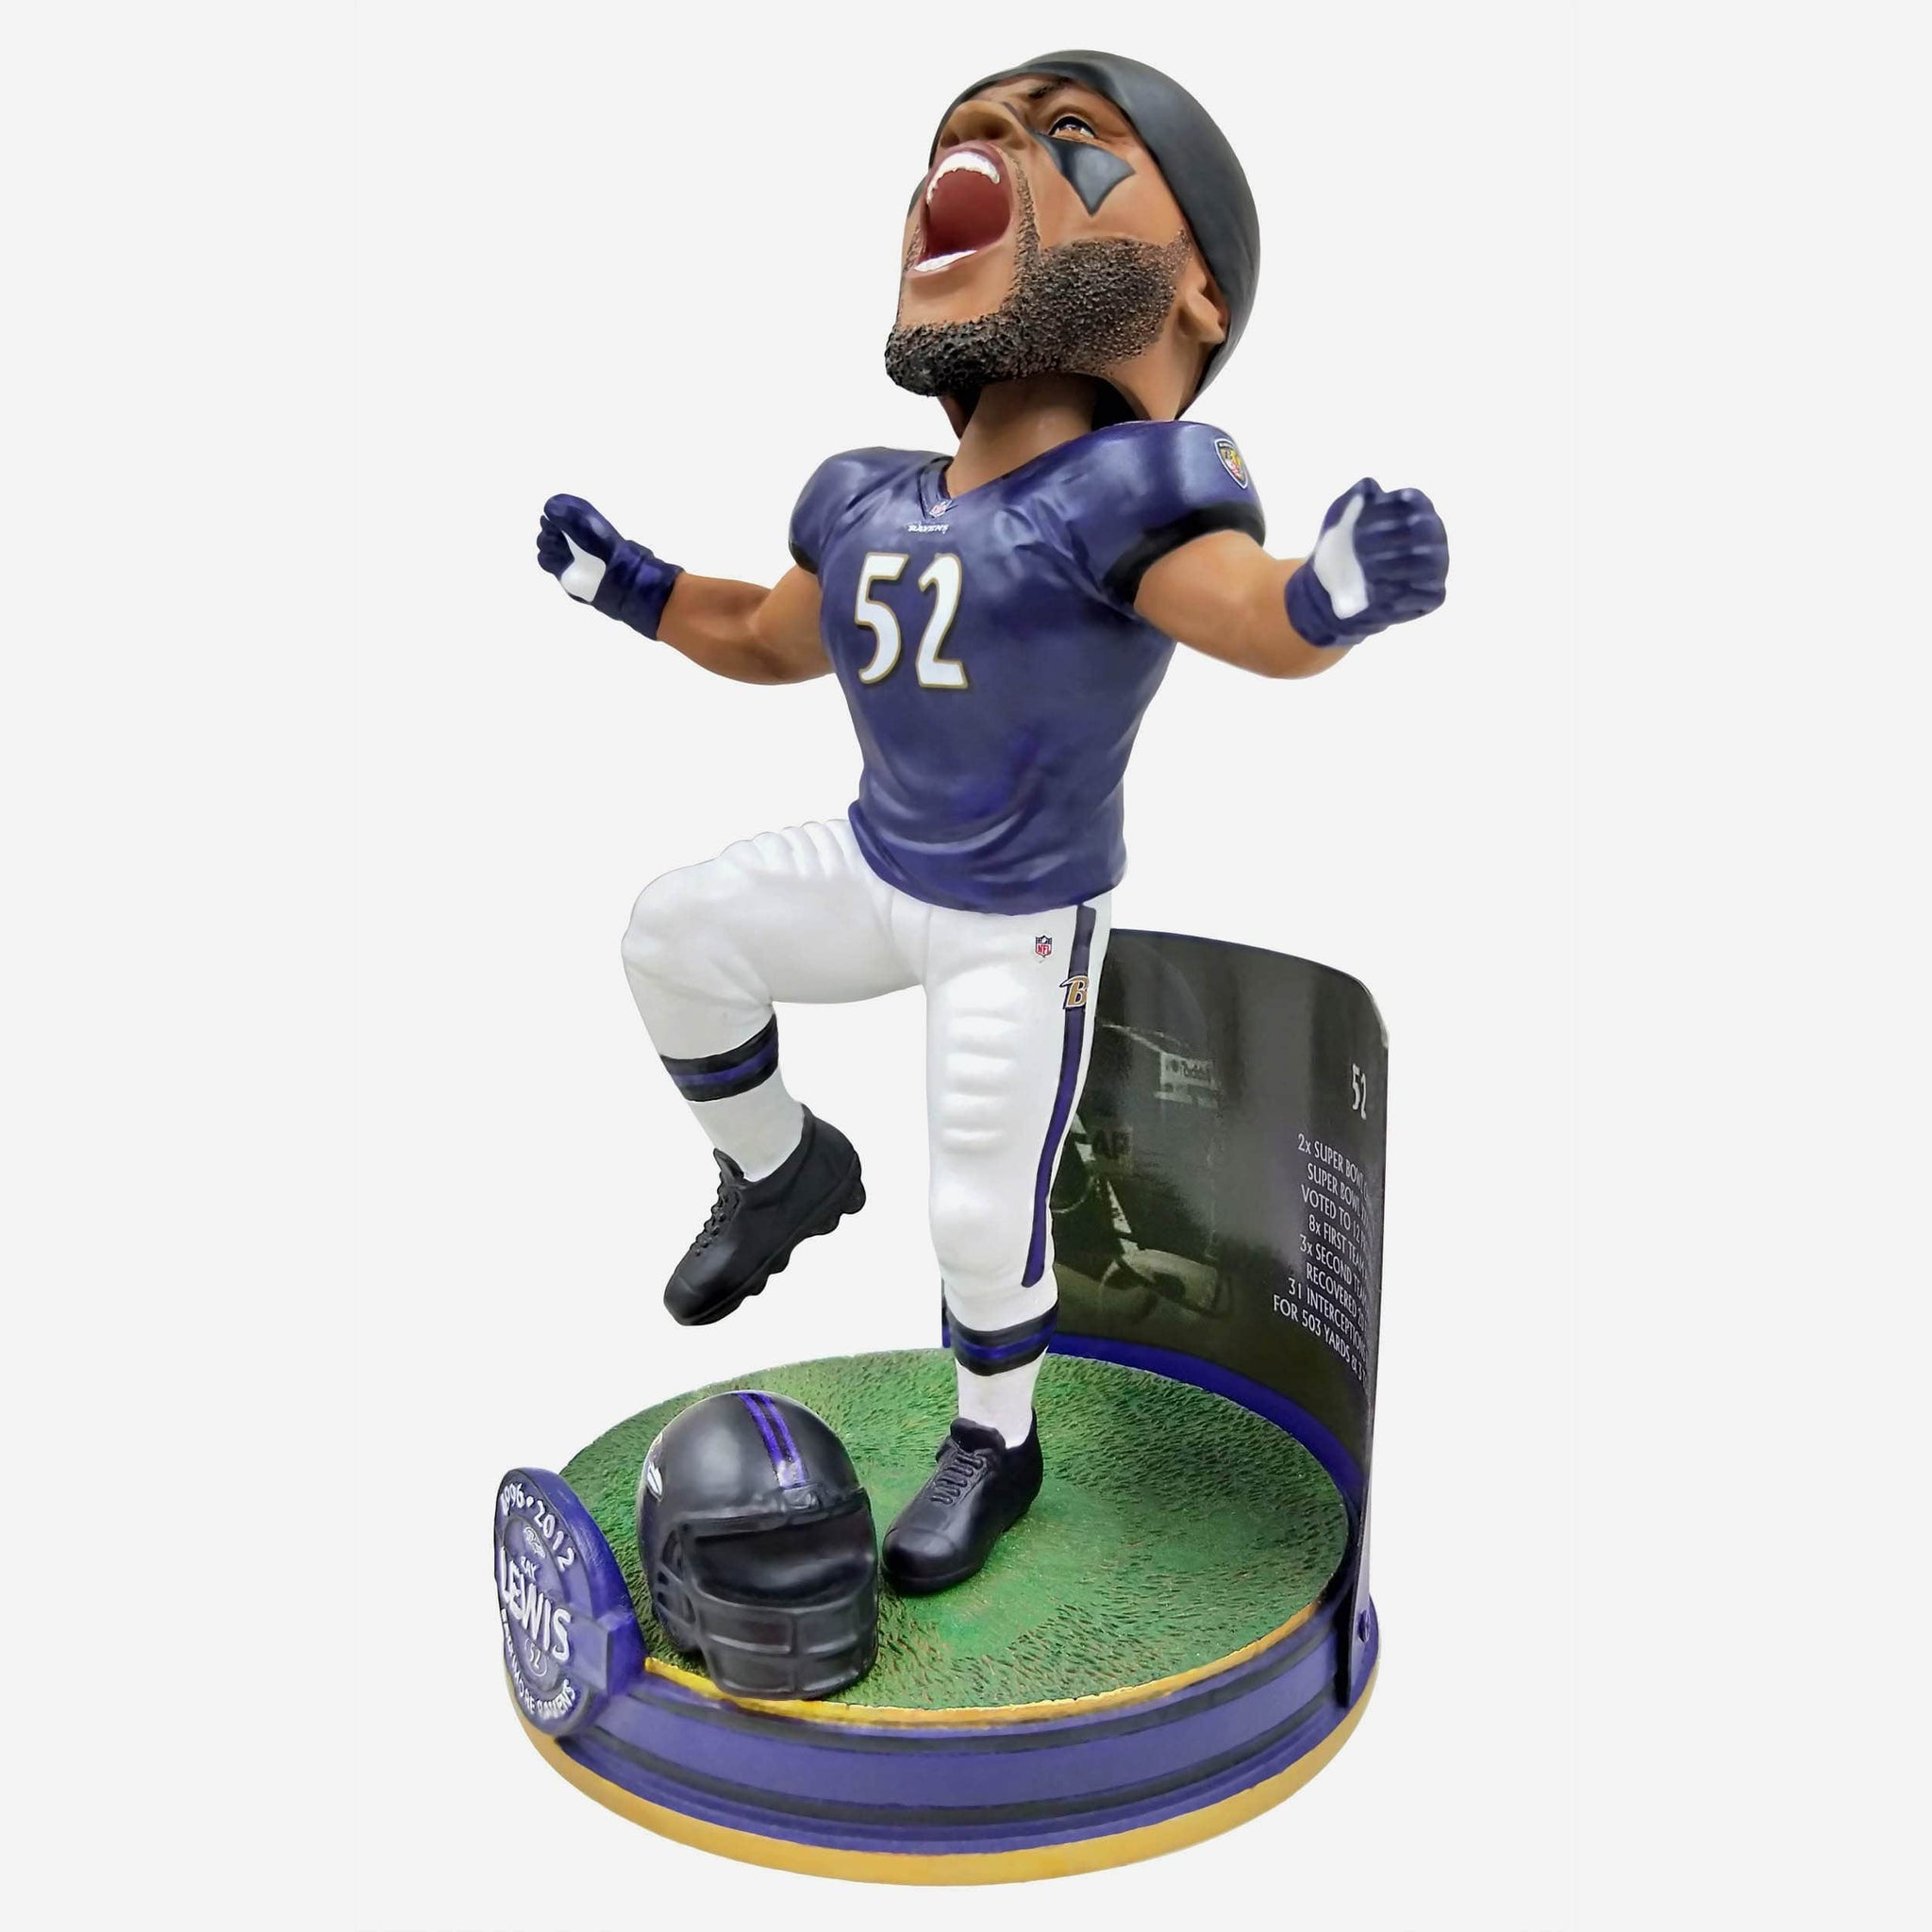 Ray Lewis Baltimore Ravens NFL Career Stats Bobblehead FOCO - FOCO.com